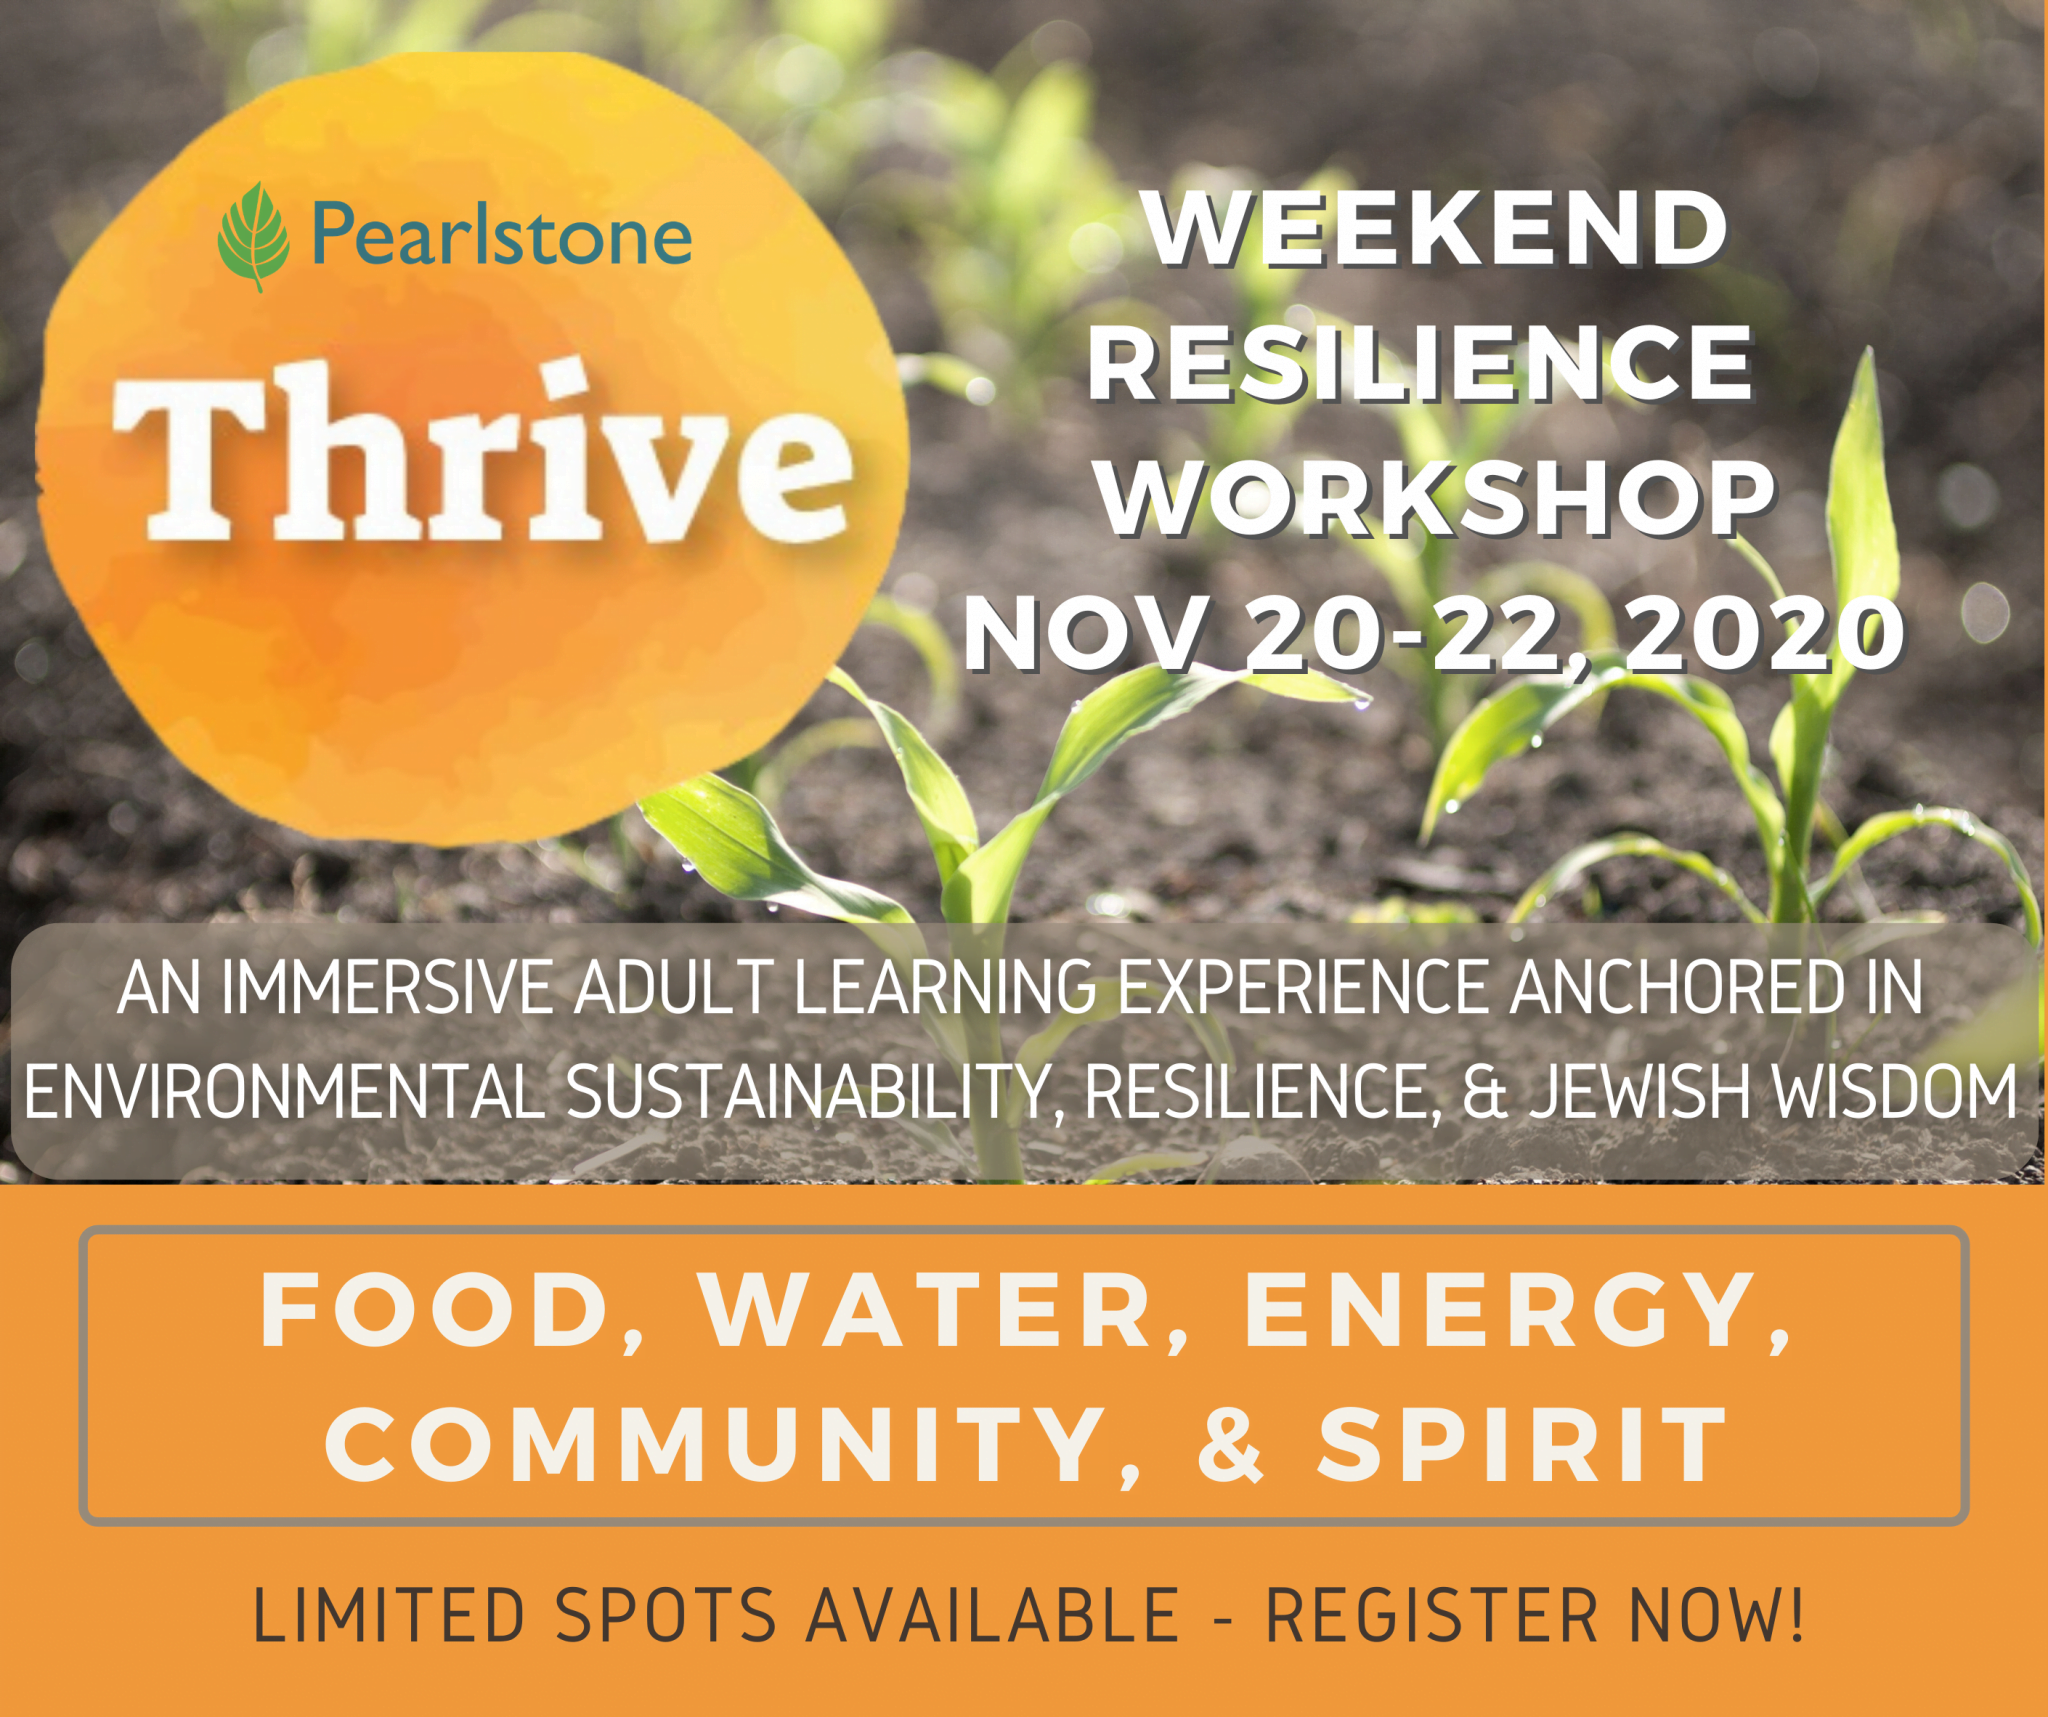 thrive workshop at pearlstone